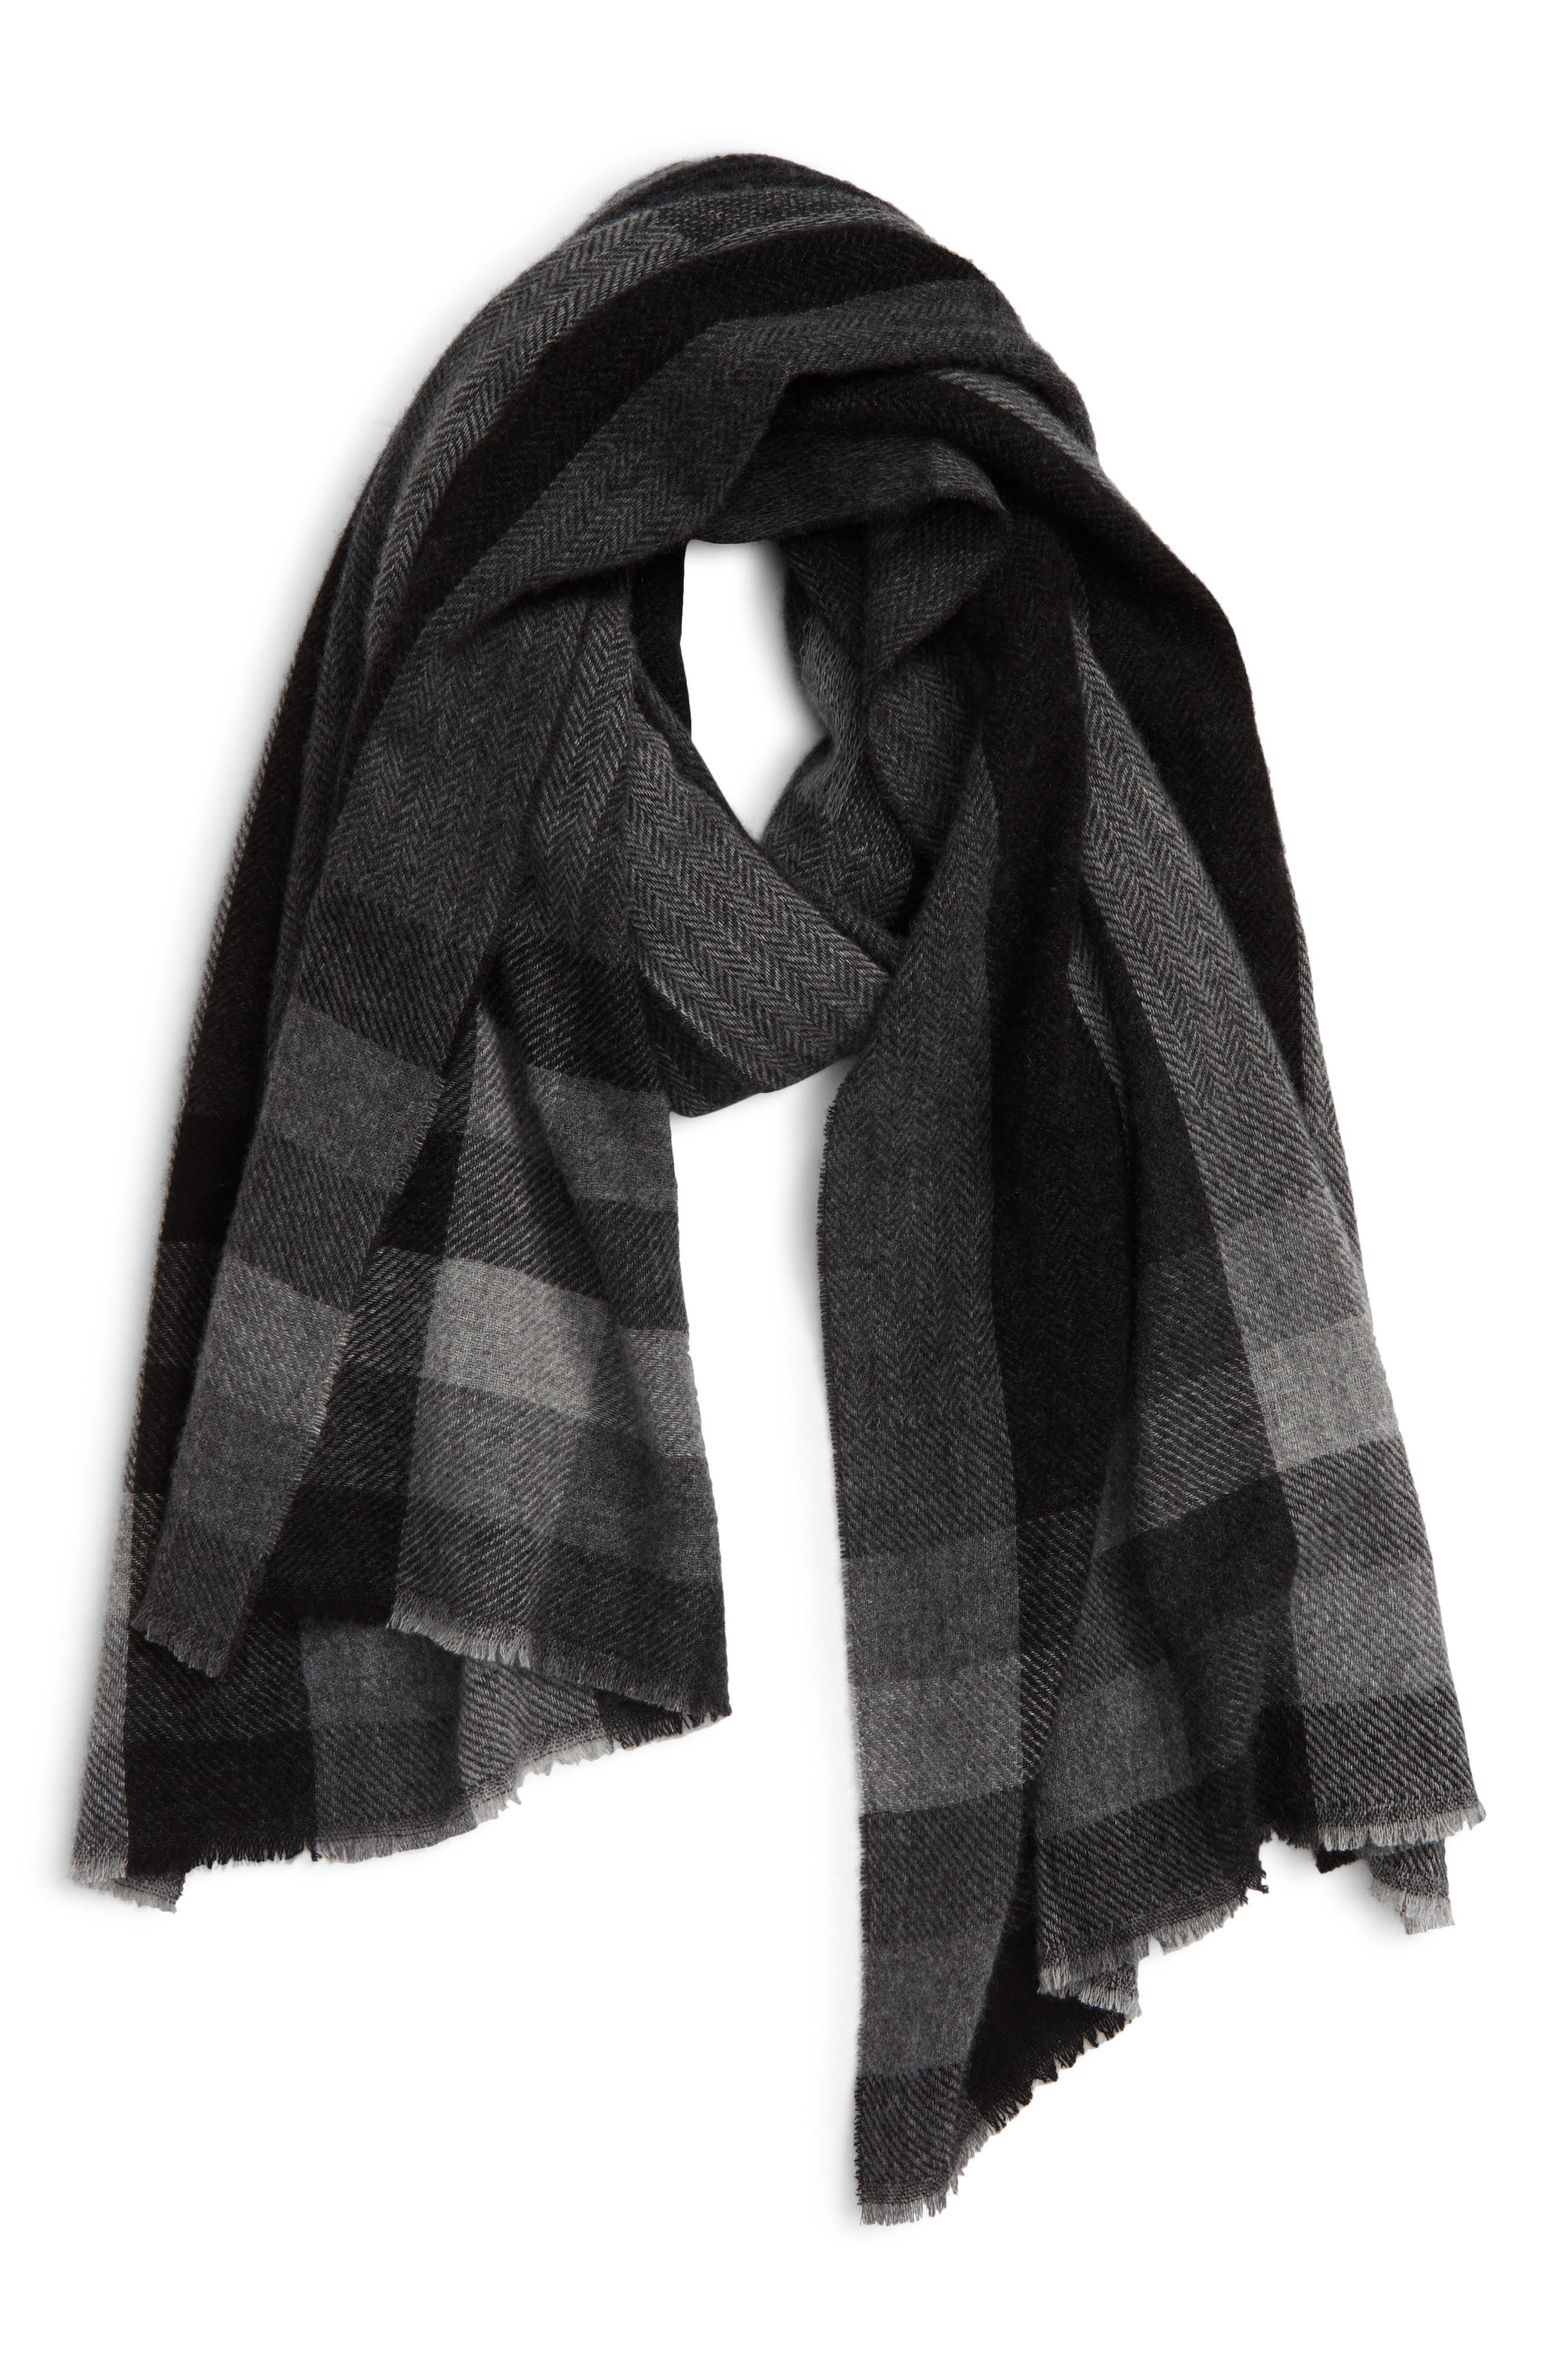 Mixed Weave Cashmere Scarf